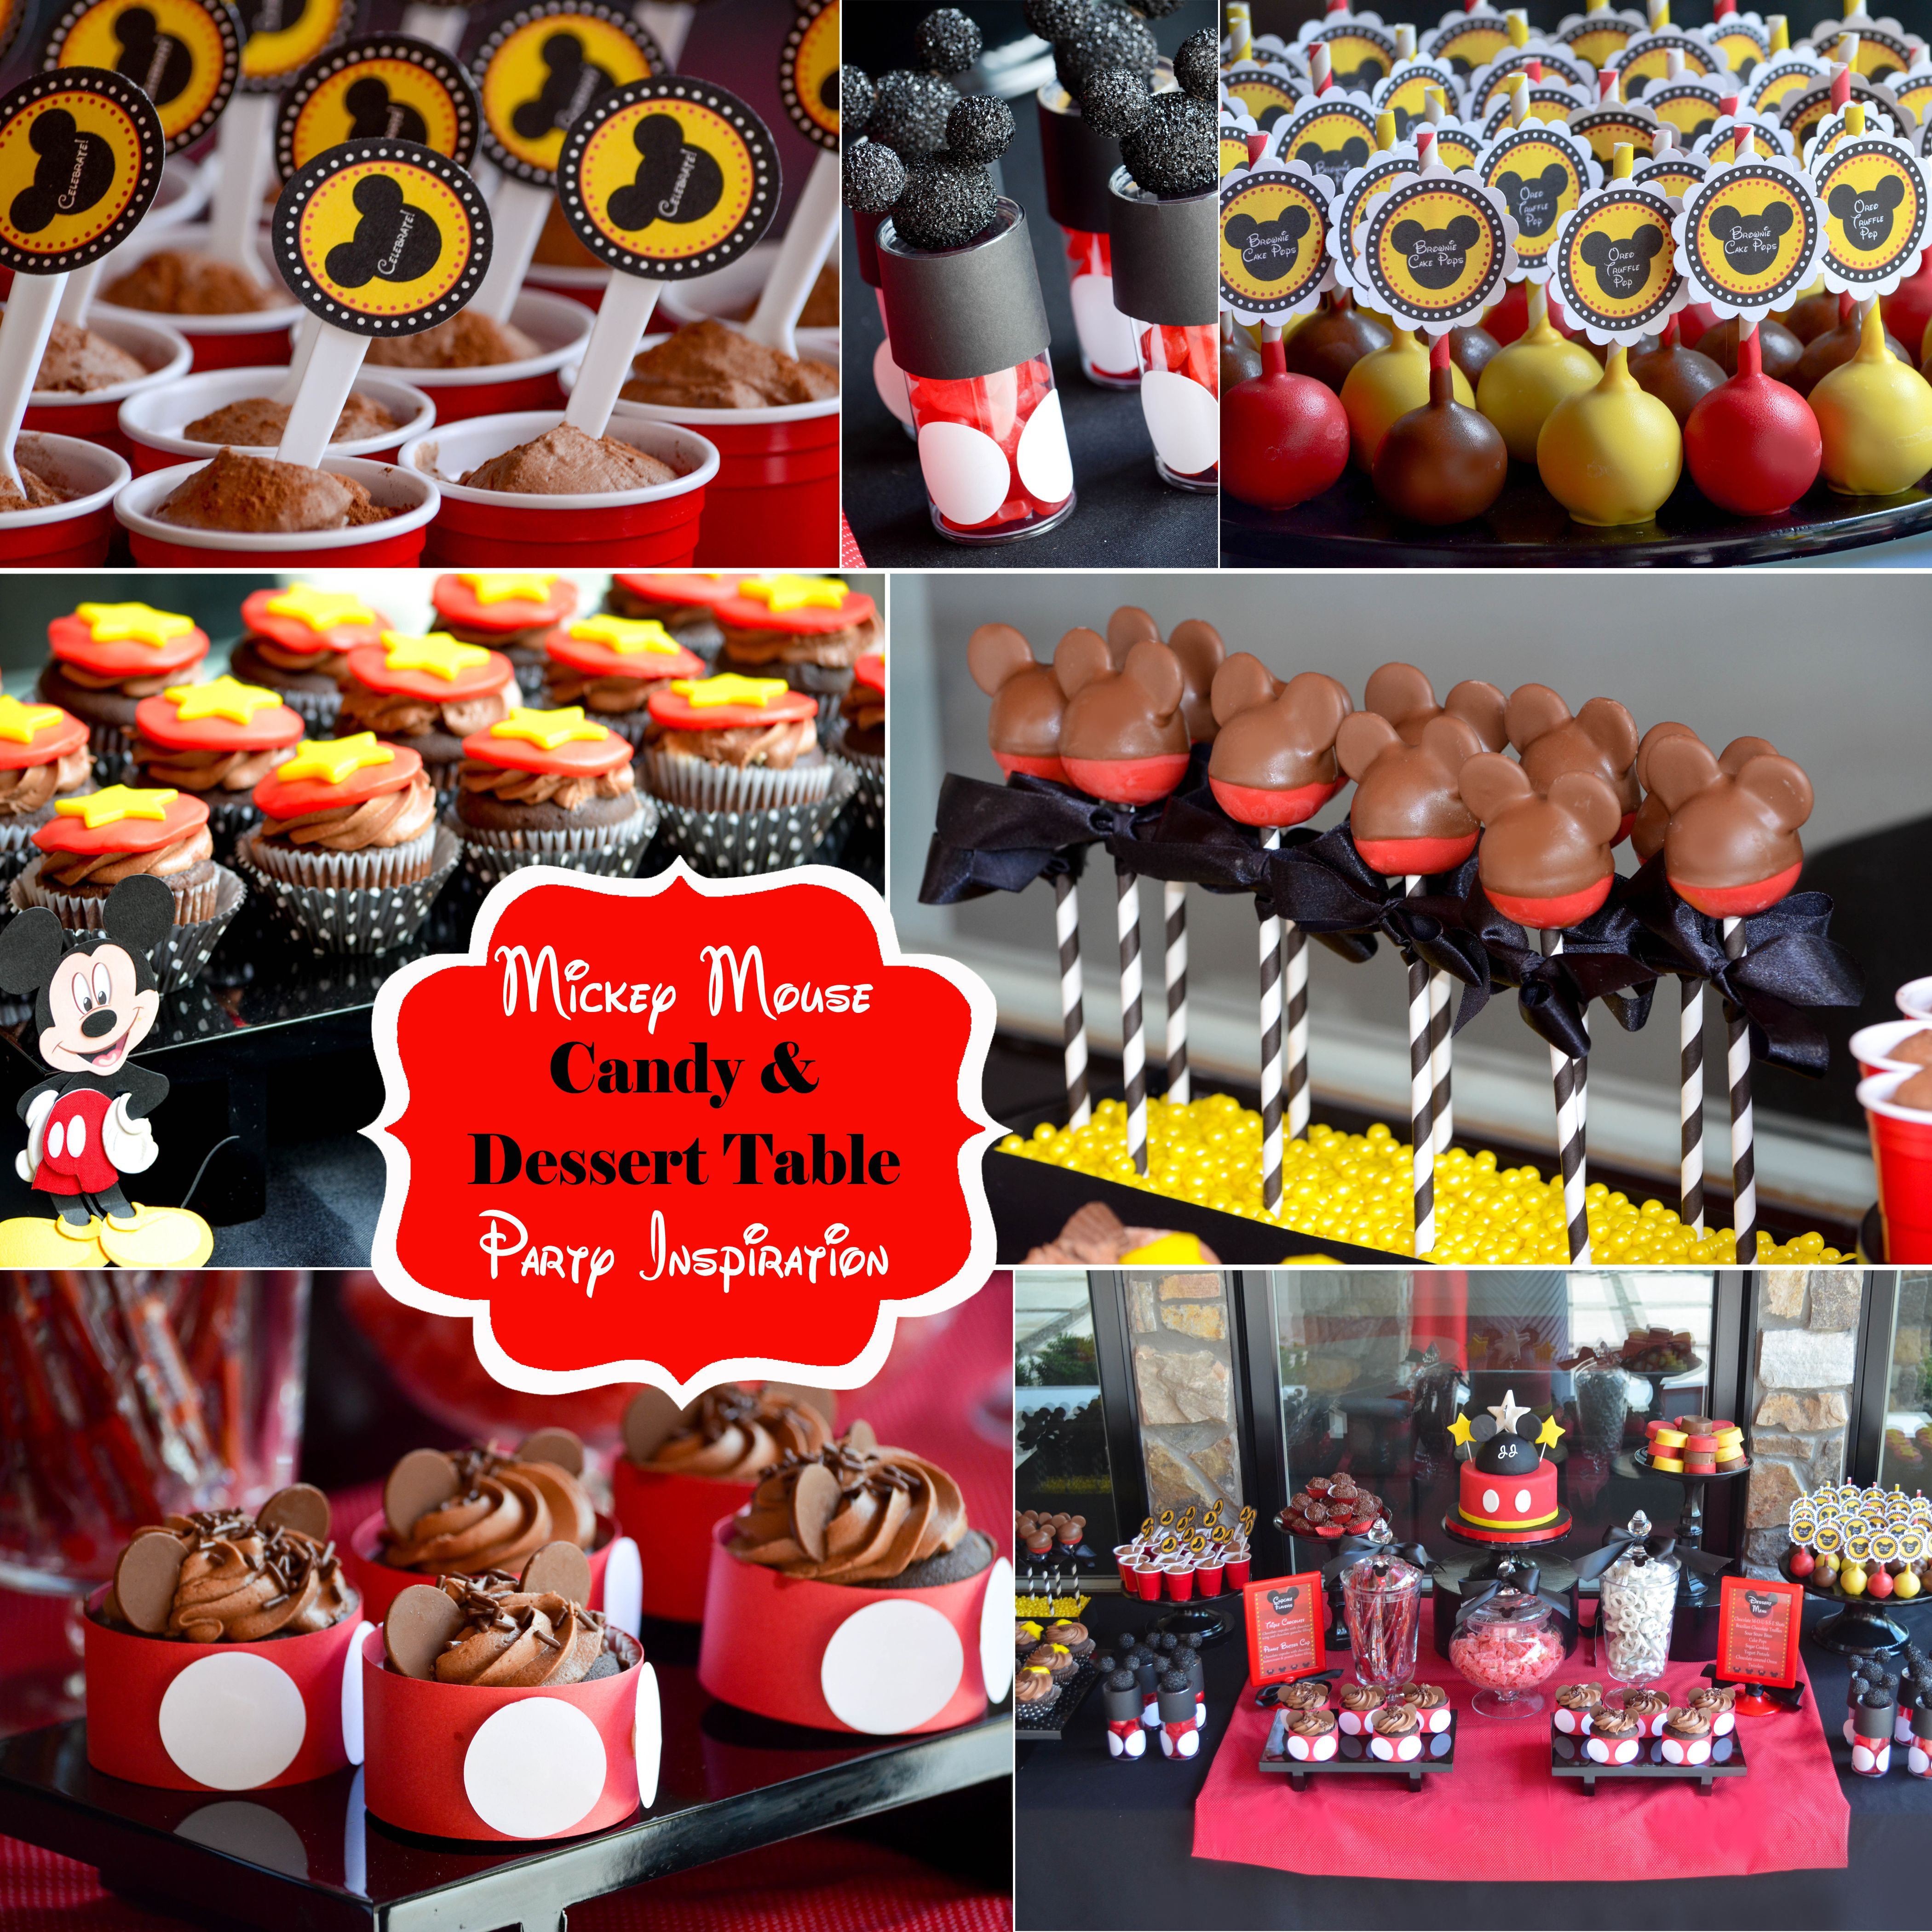 Mickey Mouse Dessert Tables And Candy Buffets Party Inspiration And Ideas Nj Nyc Pa Nyccandyt Mickey Mouse Desserts Candy Buffet Party Mickey Mouse Treats